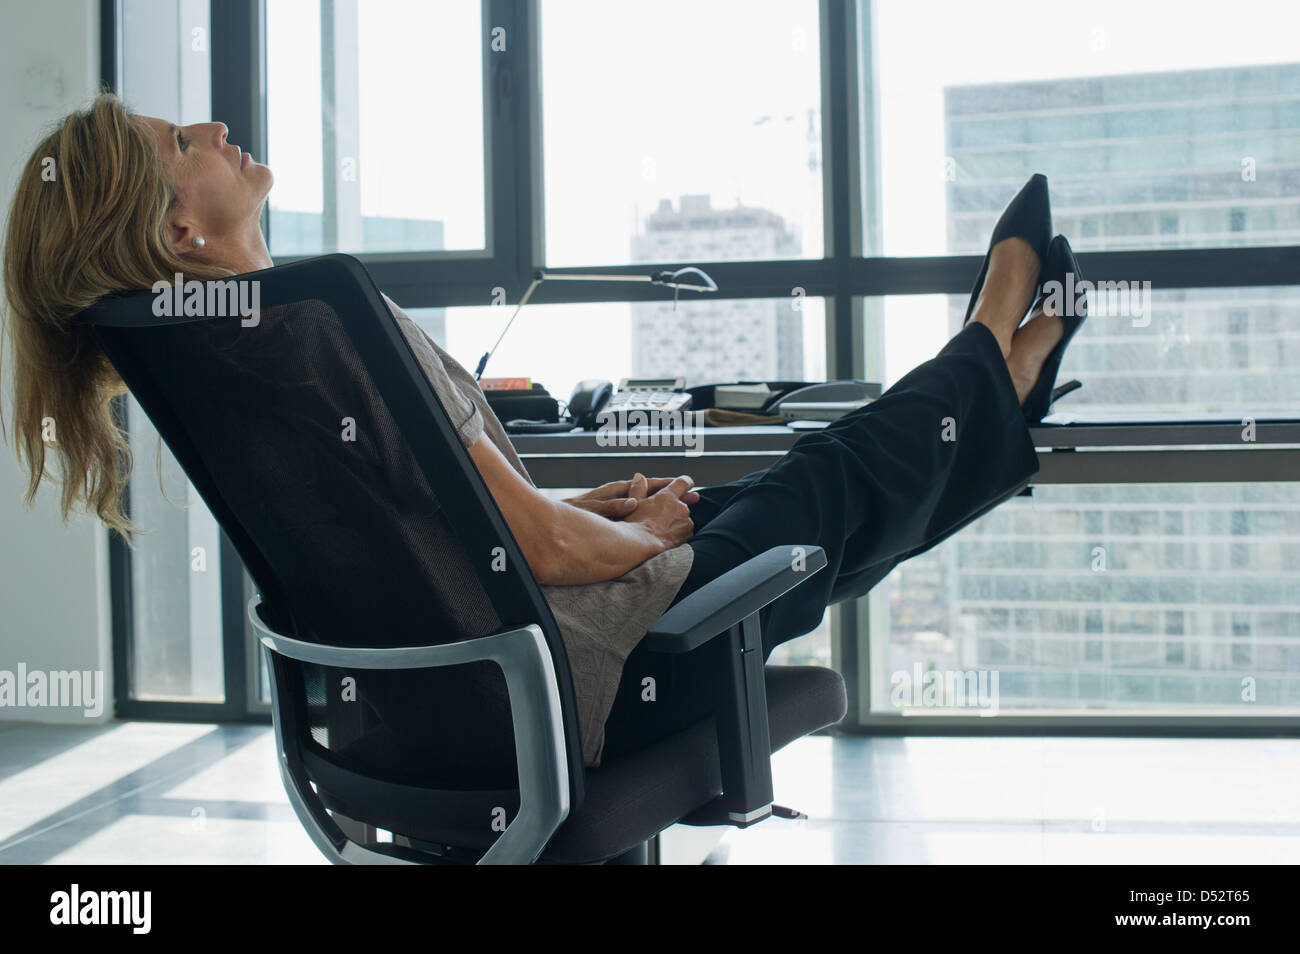 Businesswoman leaning back in chair with feet up on desk - Stock Image